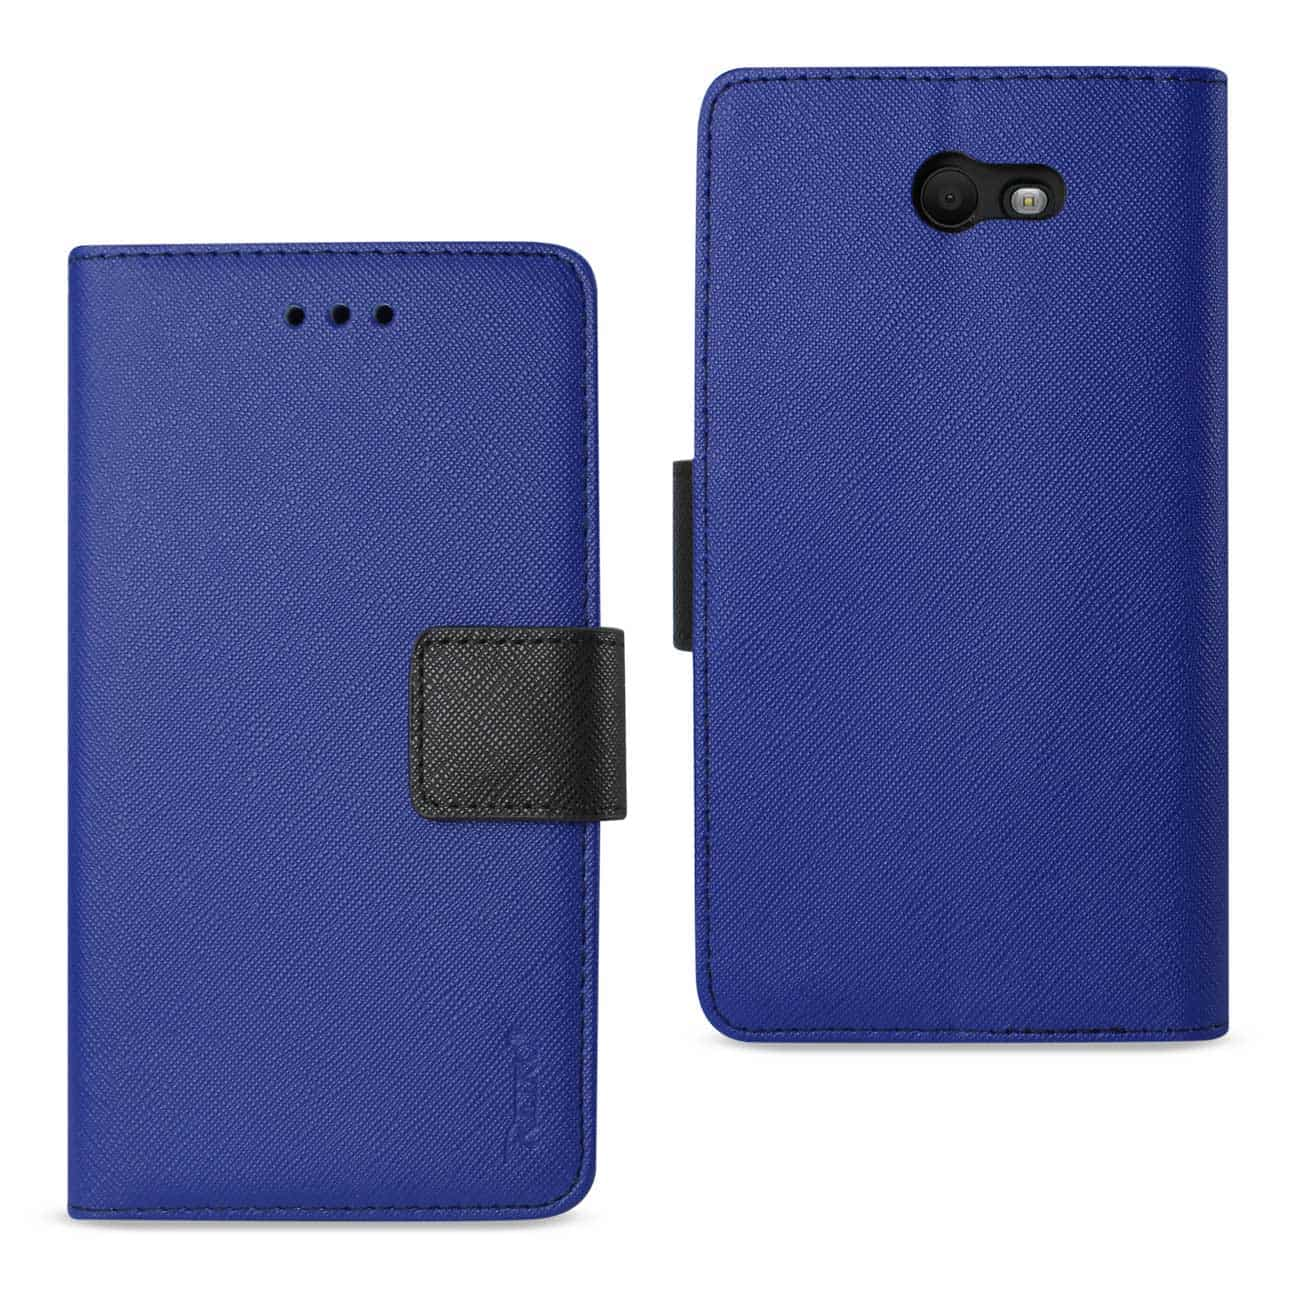 SAMSUNG GALAXY J7 V (2017) 3-IN-1 WALLET CASE IN NAVY